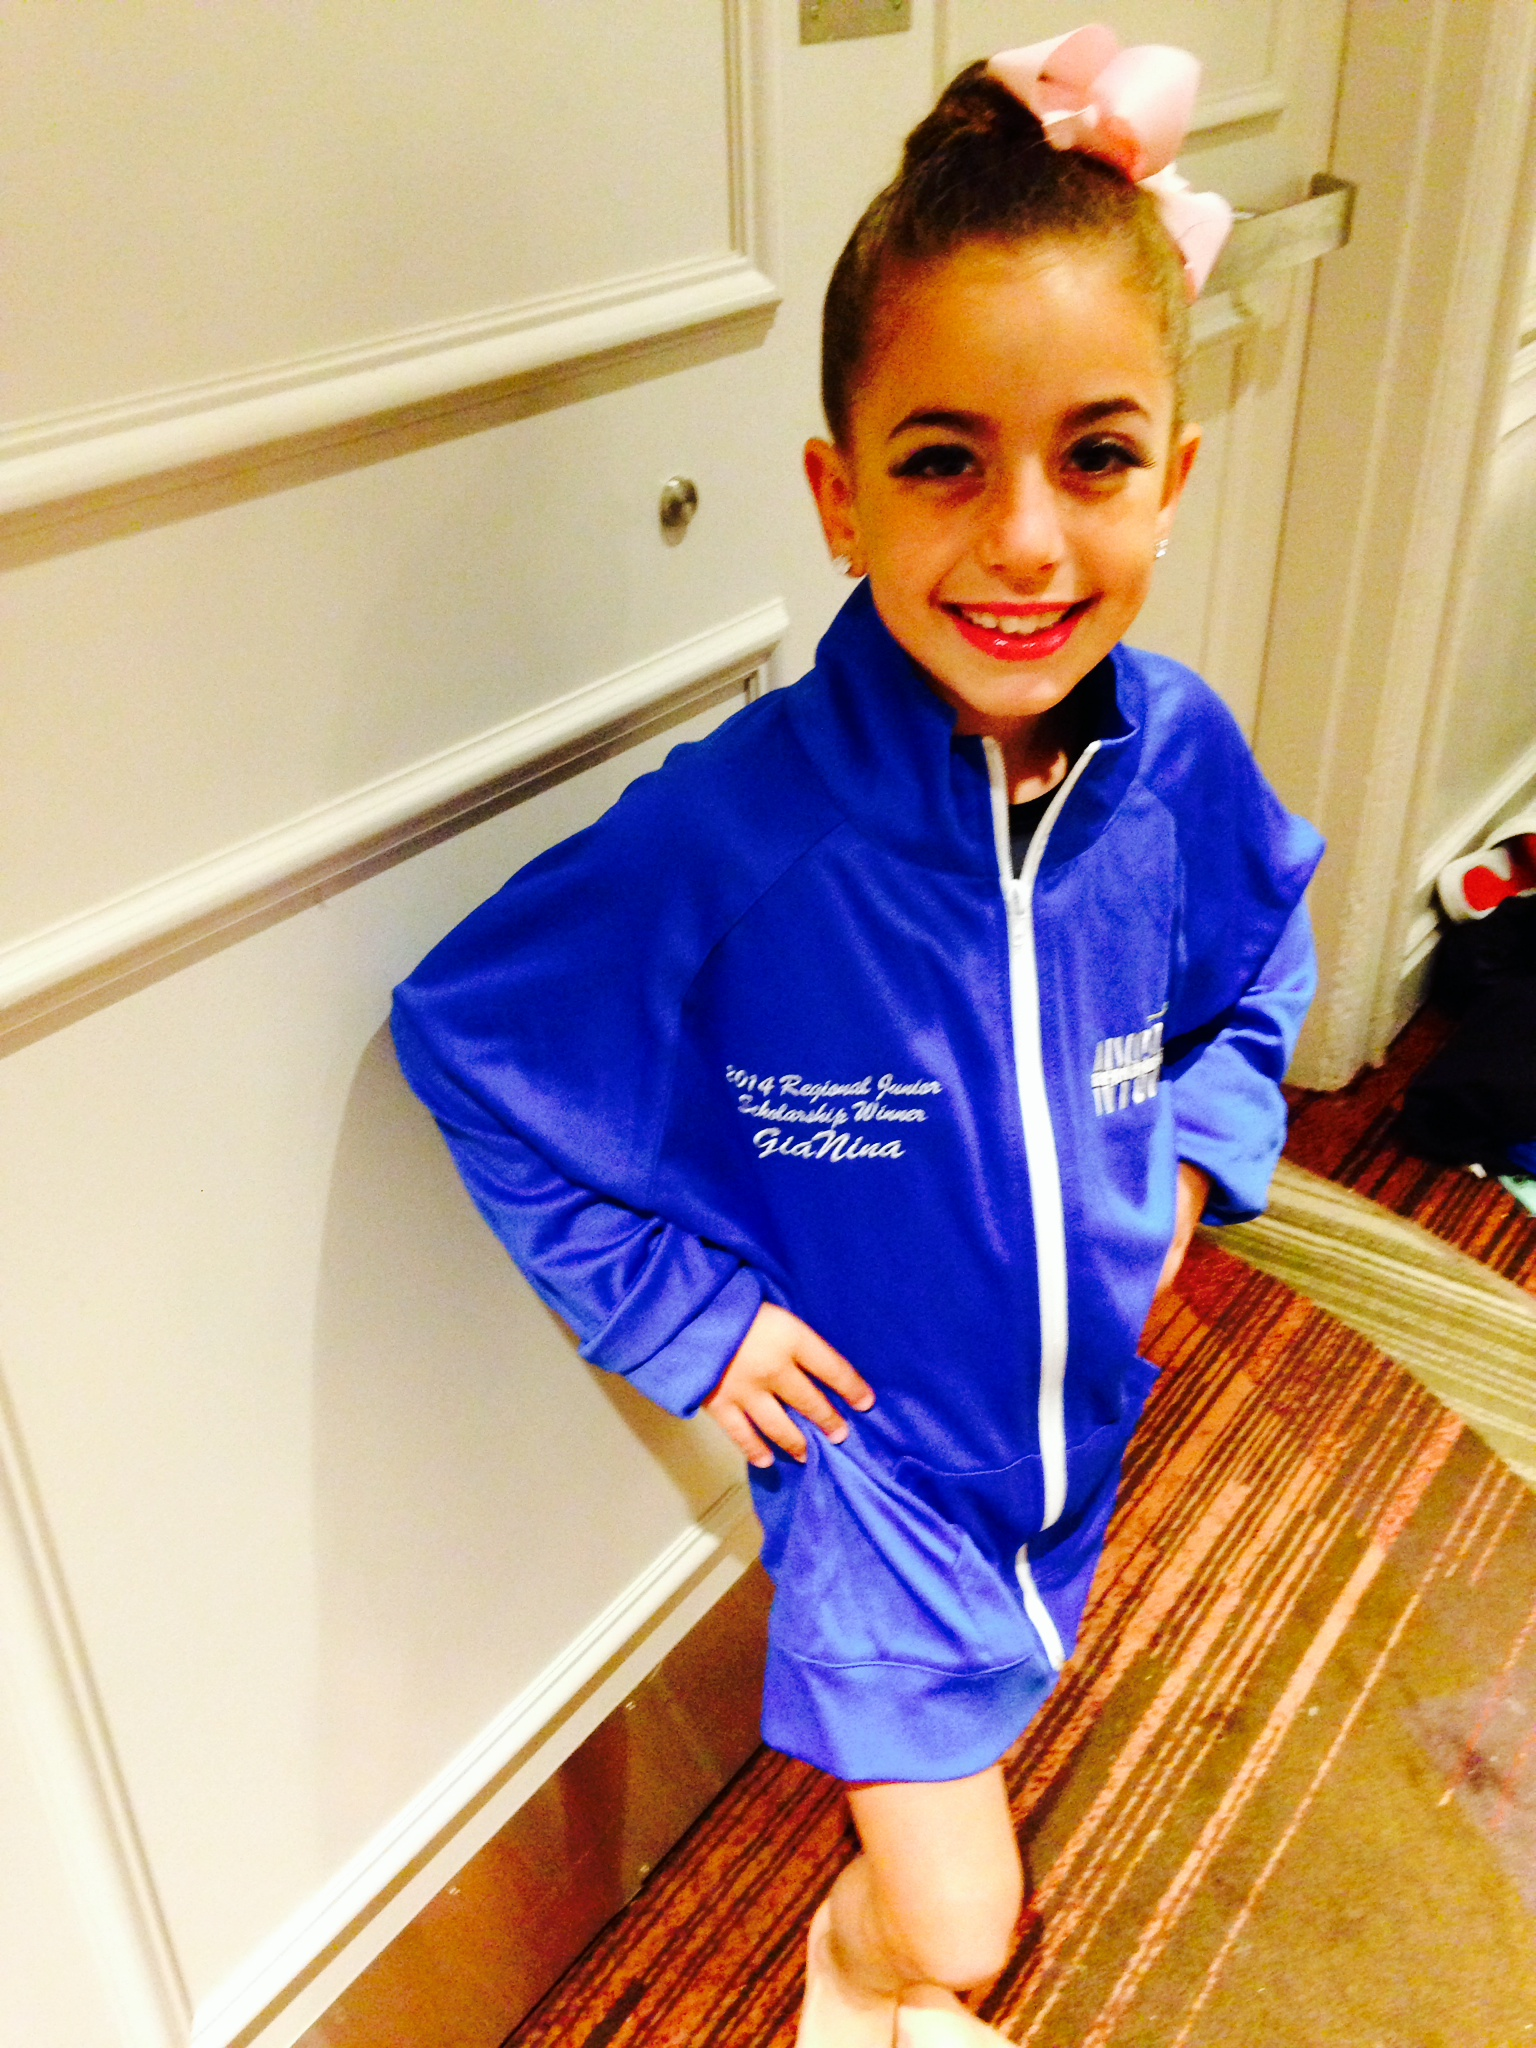 GiaNina-with-her-Junior-scholarship-jacket-at-NYCDA-Nationals-2014.jpg